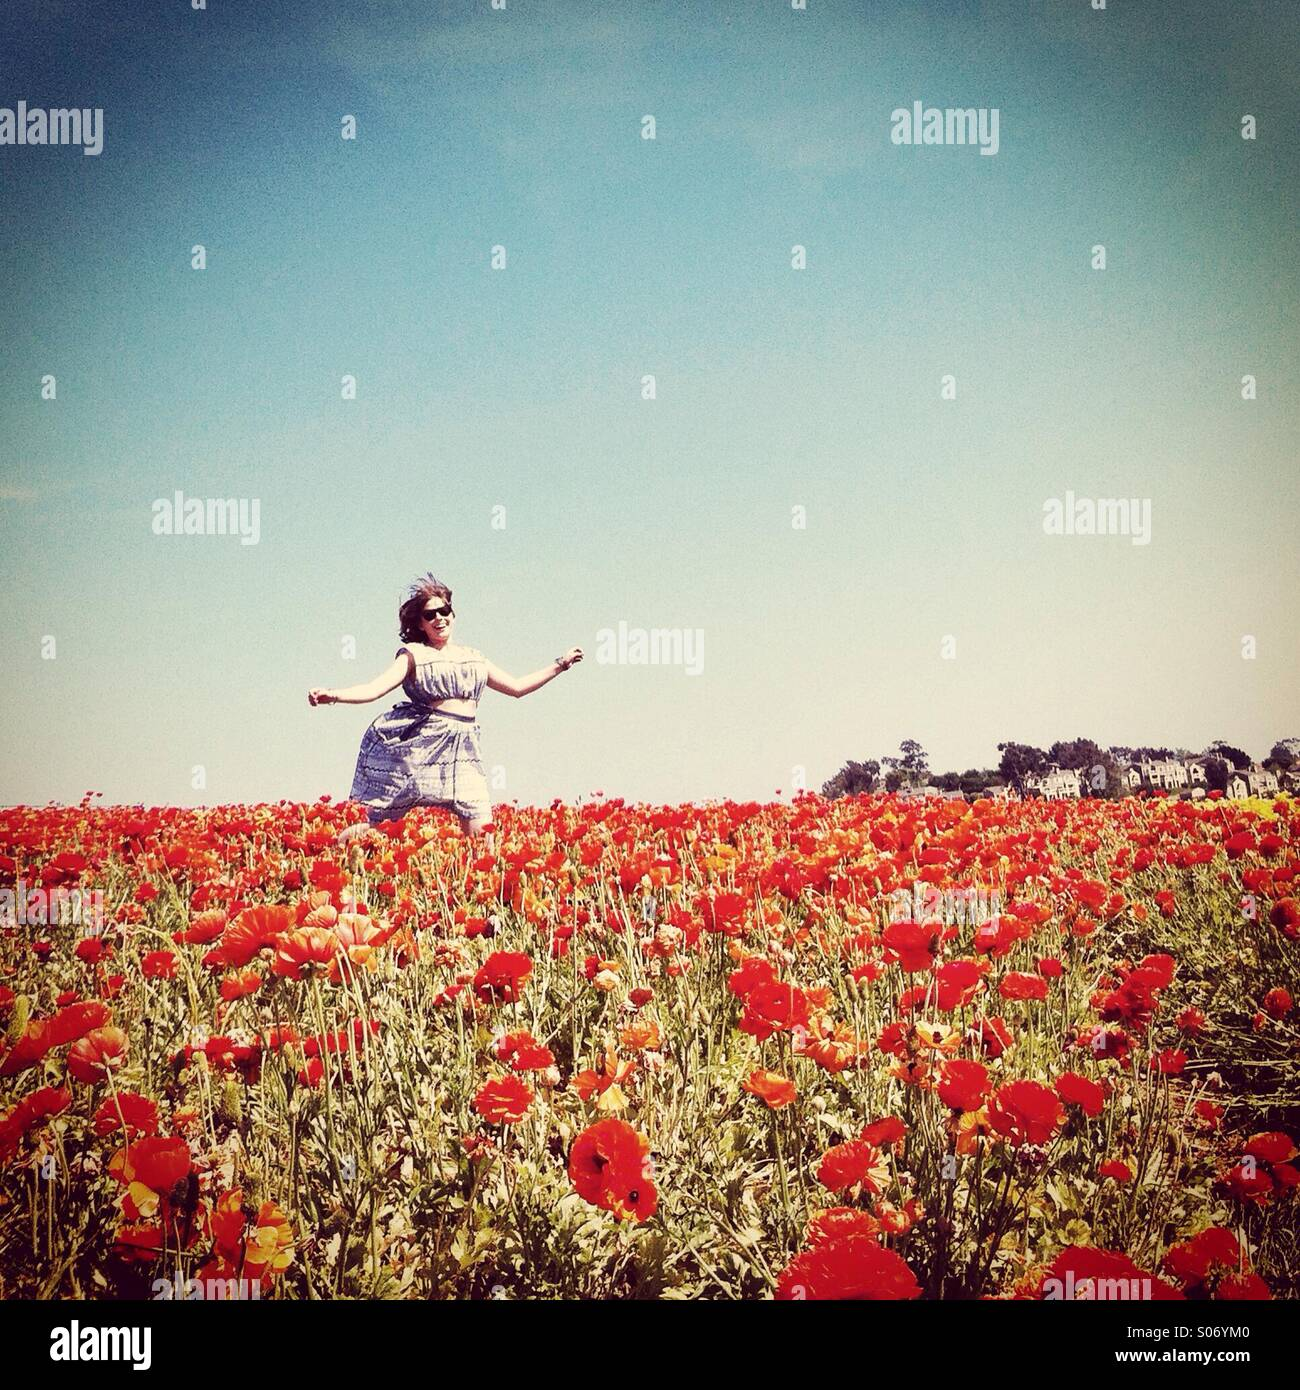 Girl dancing en champ de coquelicots Photo Stock